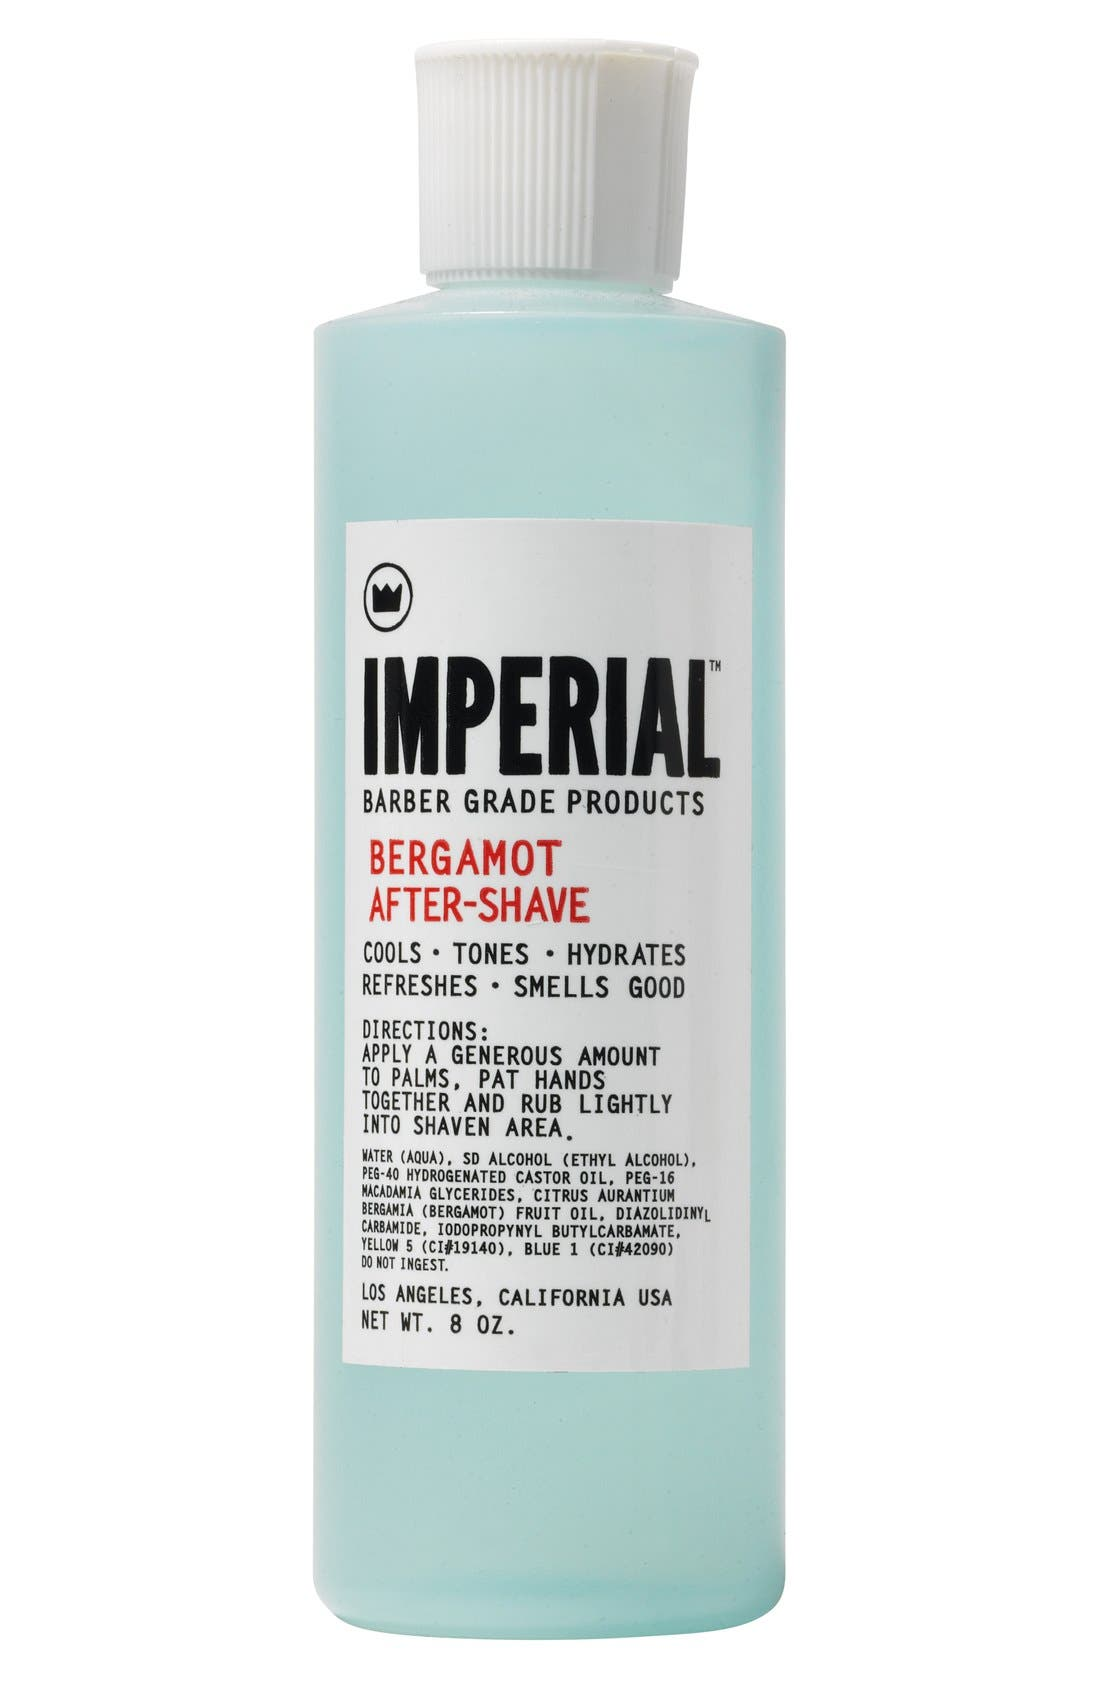 Imperial Barber Grade Products™ 'Bergamot' After-Shave